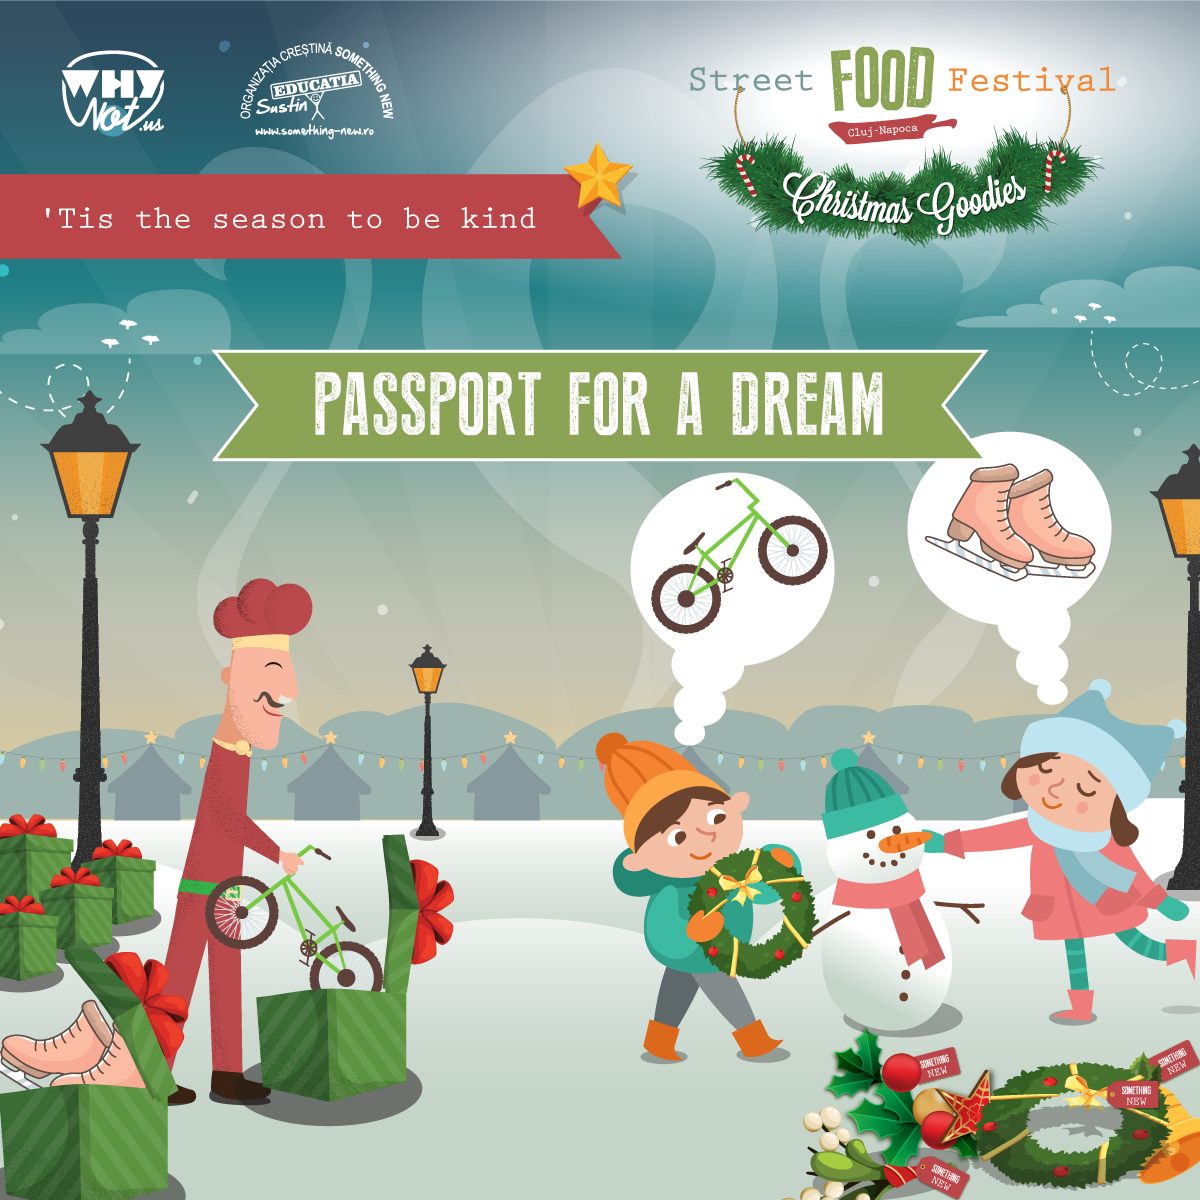 'Tis the Season to be Kind – Passport for a Dream – Street Food Festival Christmas Goodies